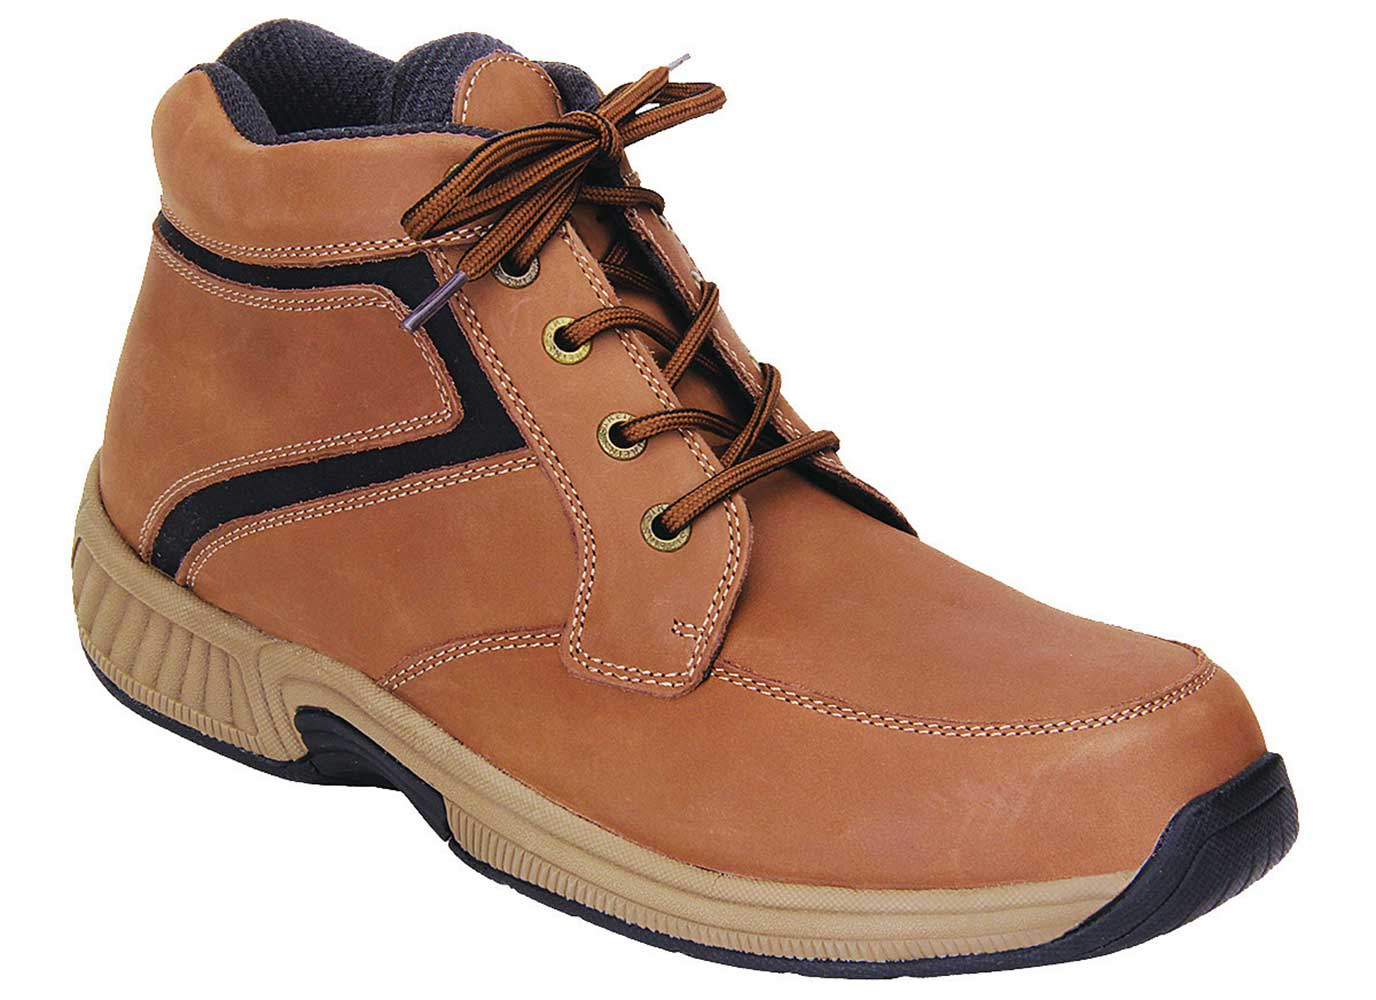 Orthofeet - Highline 487 Boot Comfort Shoe - Therapeutic ...